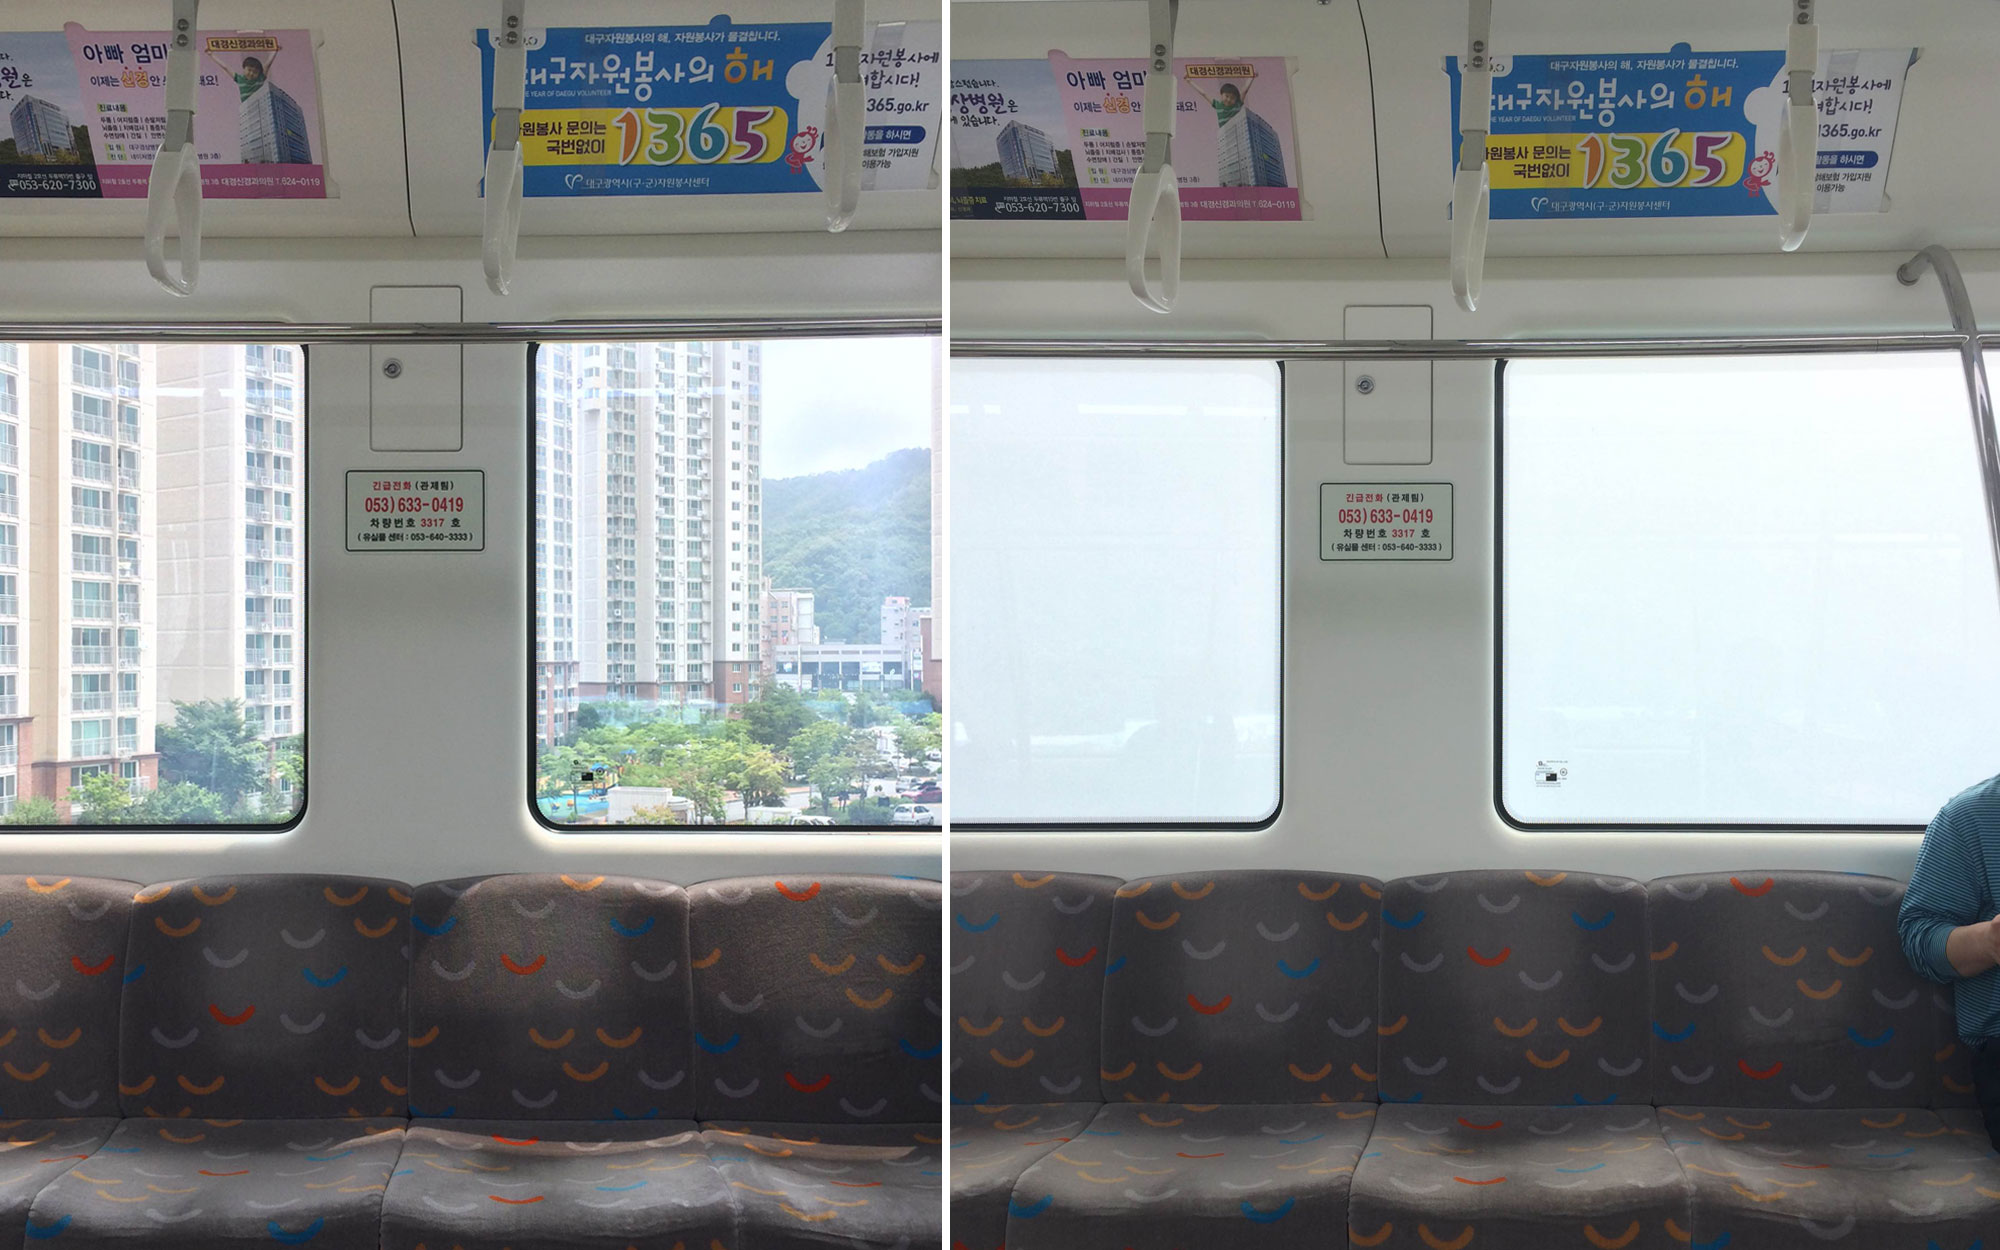 South Korean monorail has self-fogging windows for more privacy